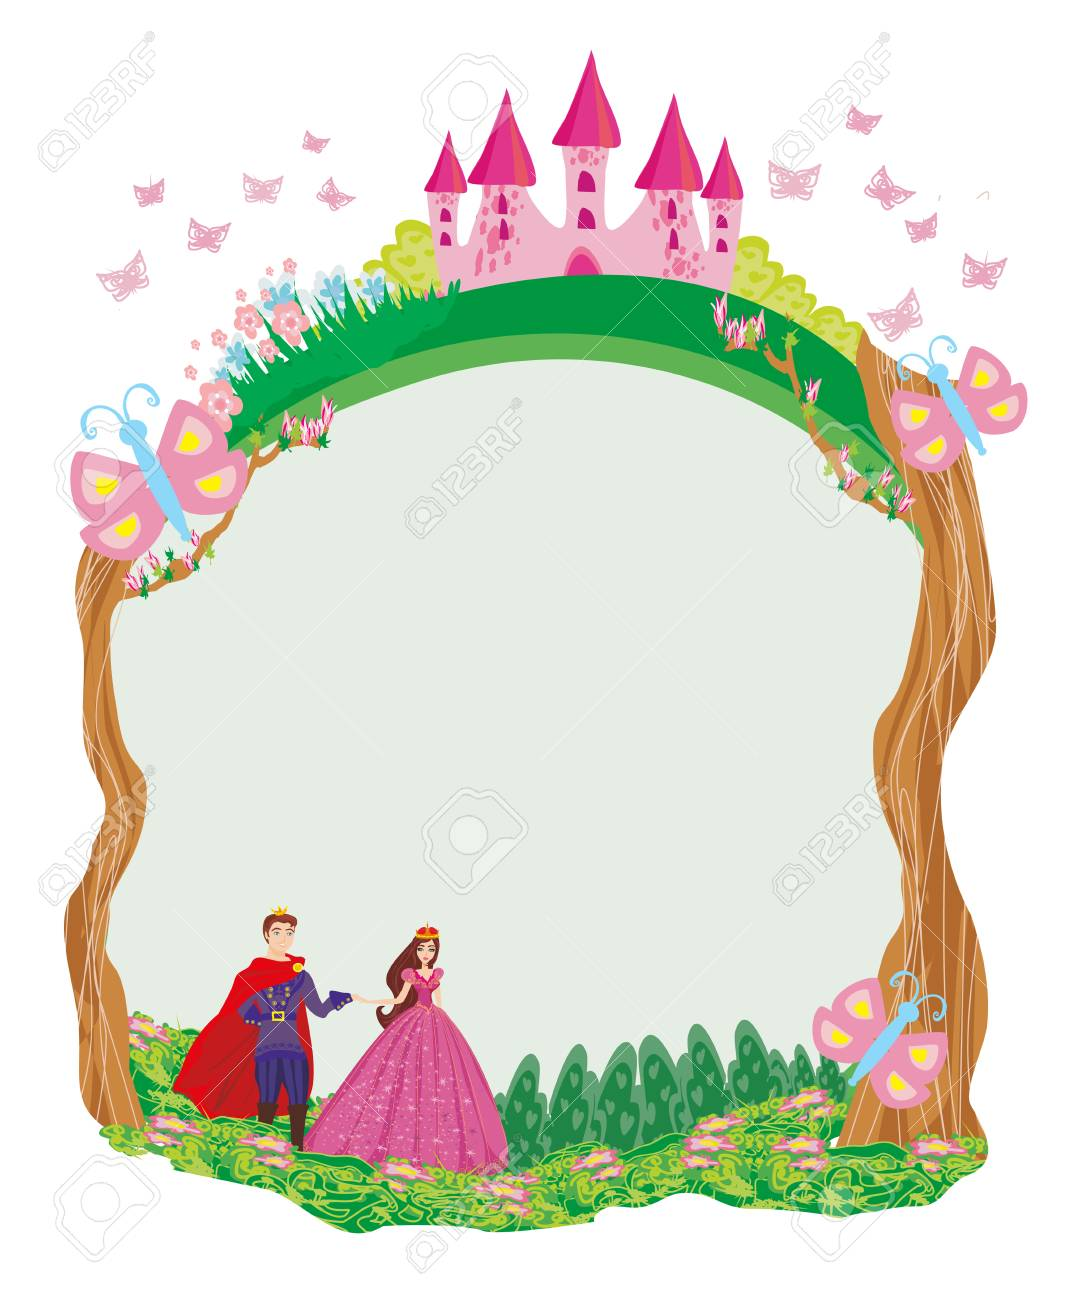 Beautiful Prince And Princess In The Garden - Frame Royalty Free ...